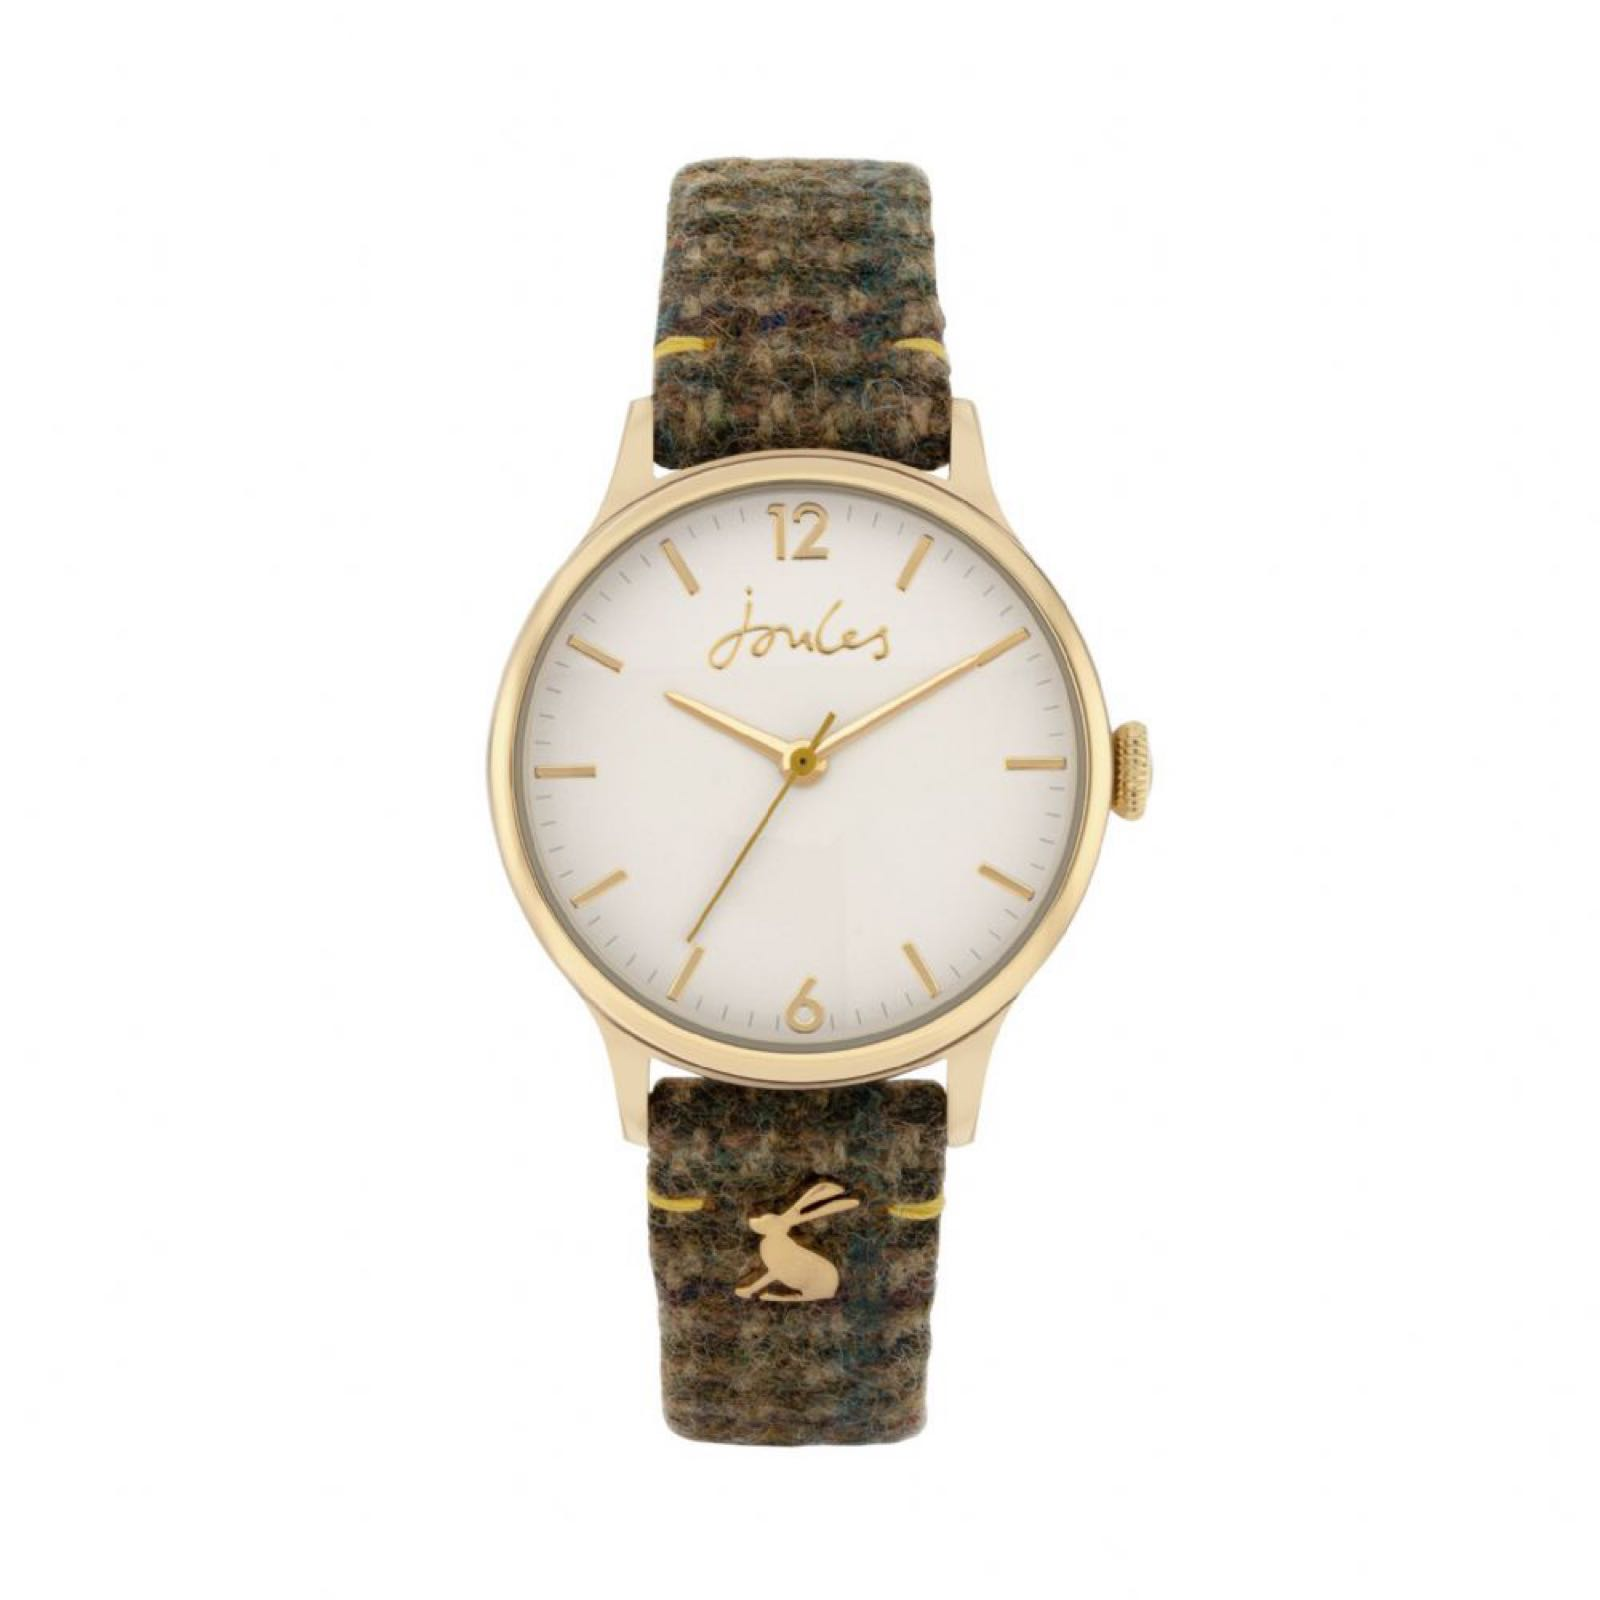 Joules 30th Anniversary green tweed watch Was £65